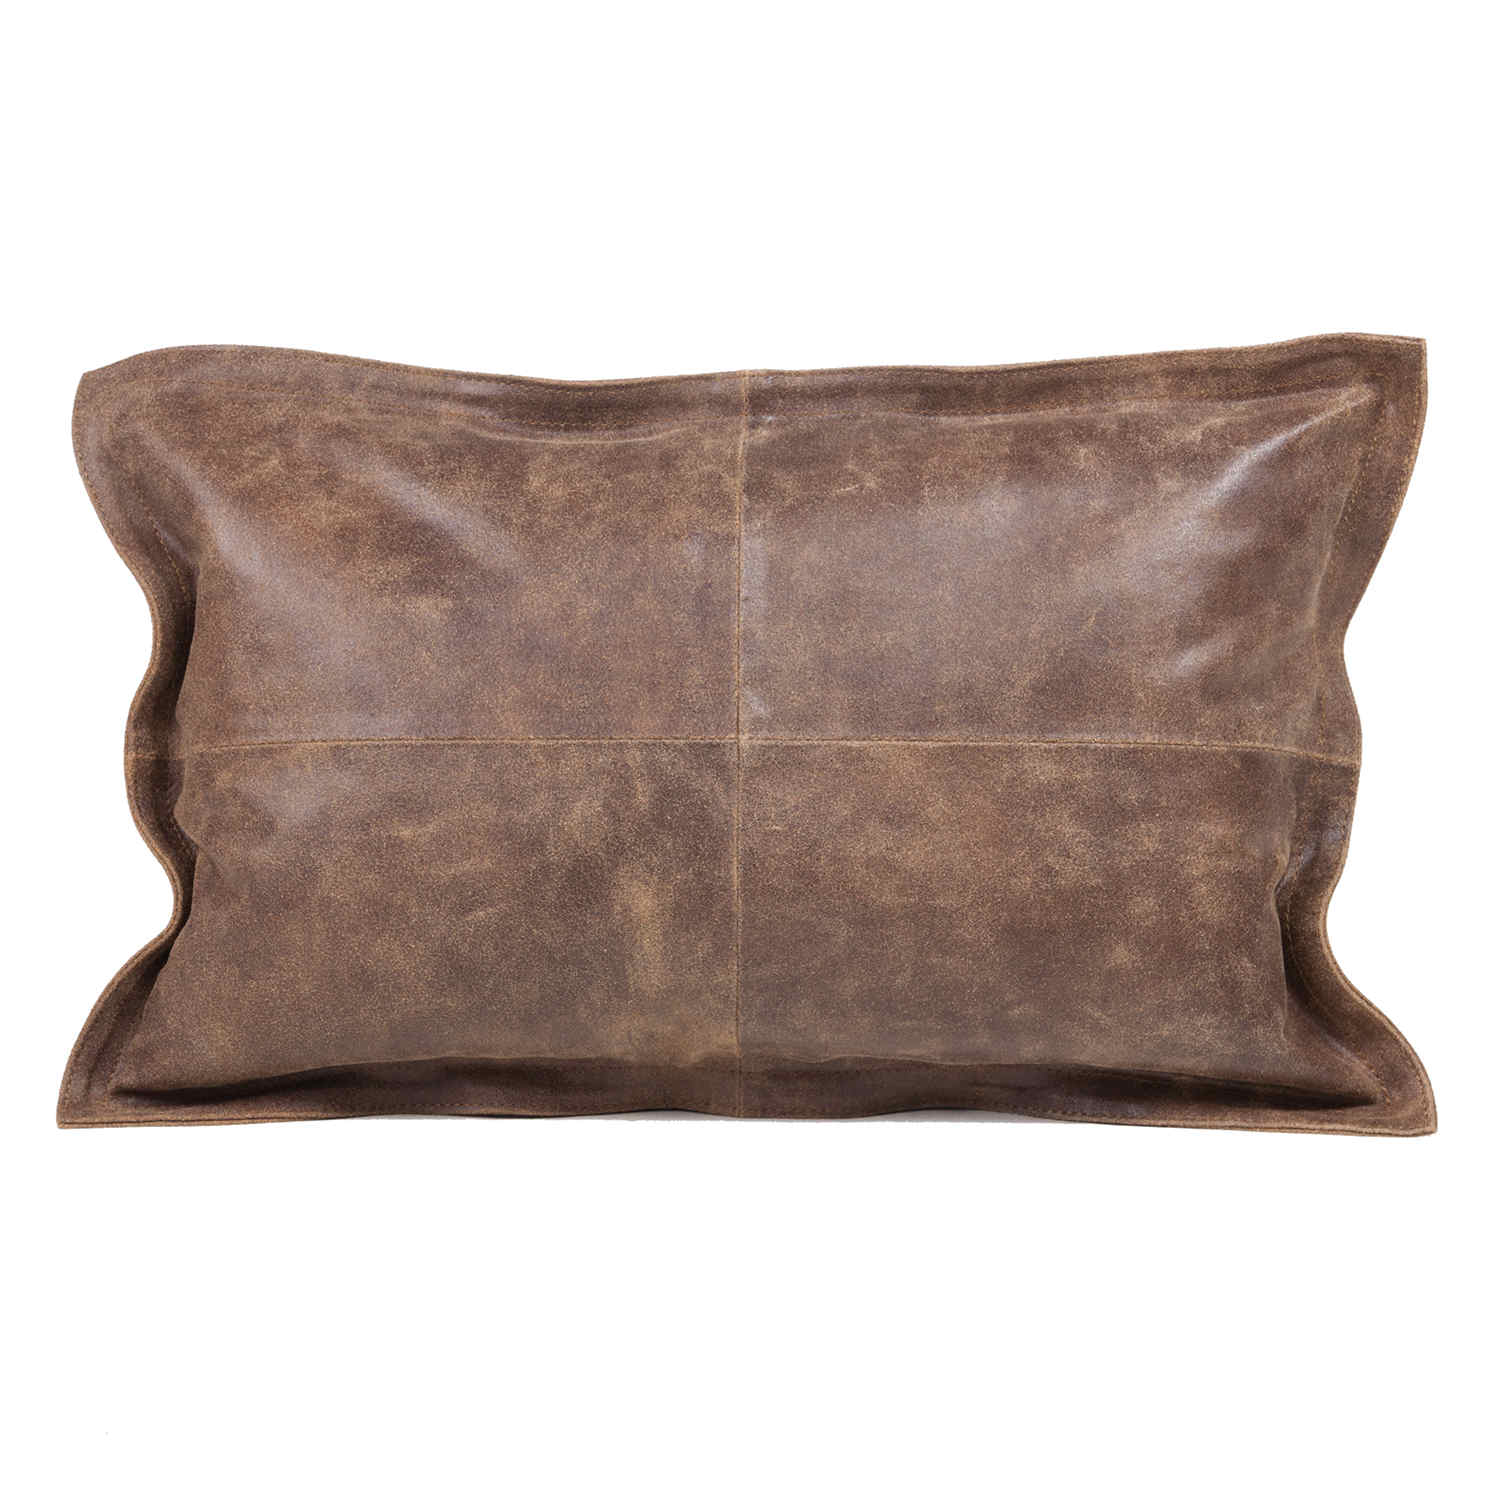 Decorative Pillow Brown : Fibre by Auskin Vintage Brown Cowhide Decorative Pillows